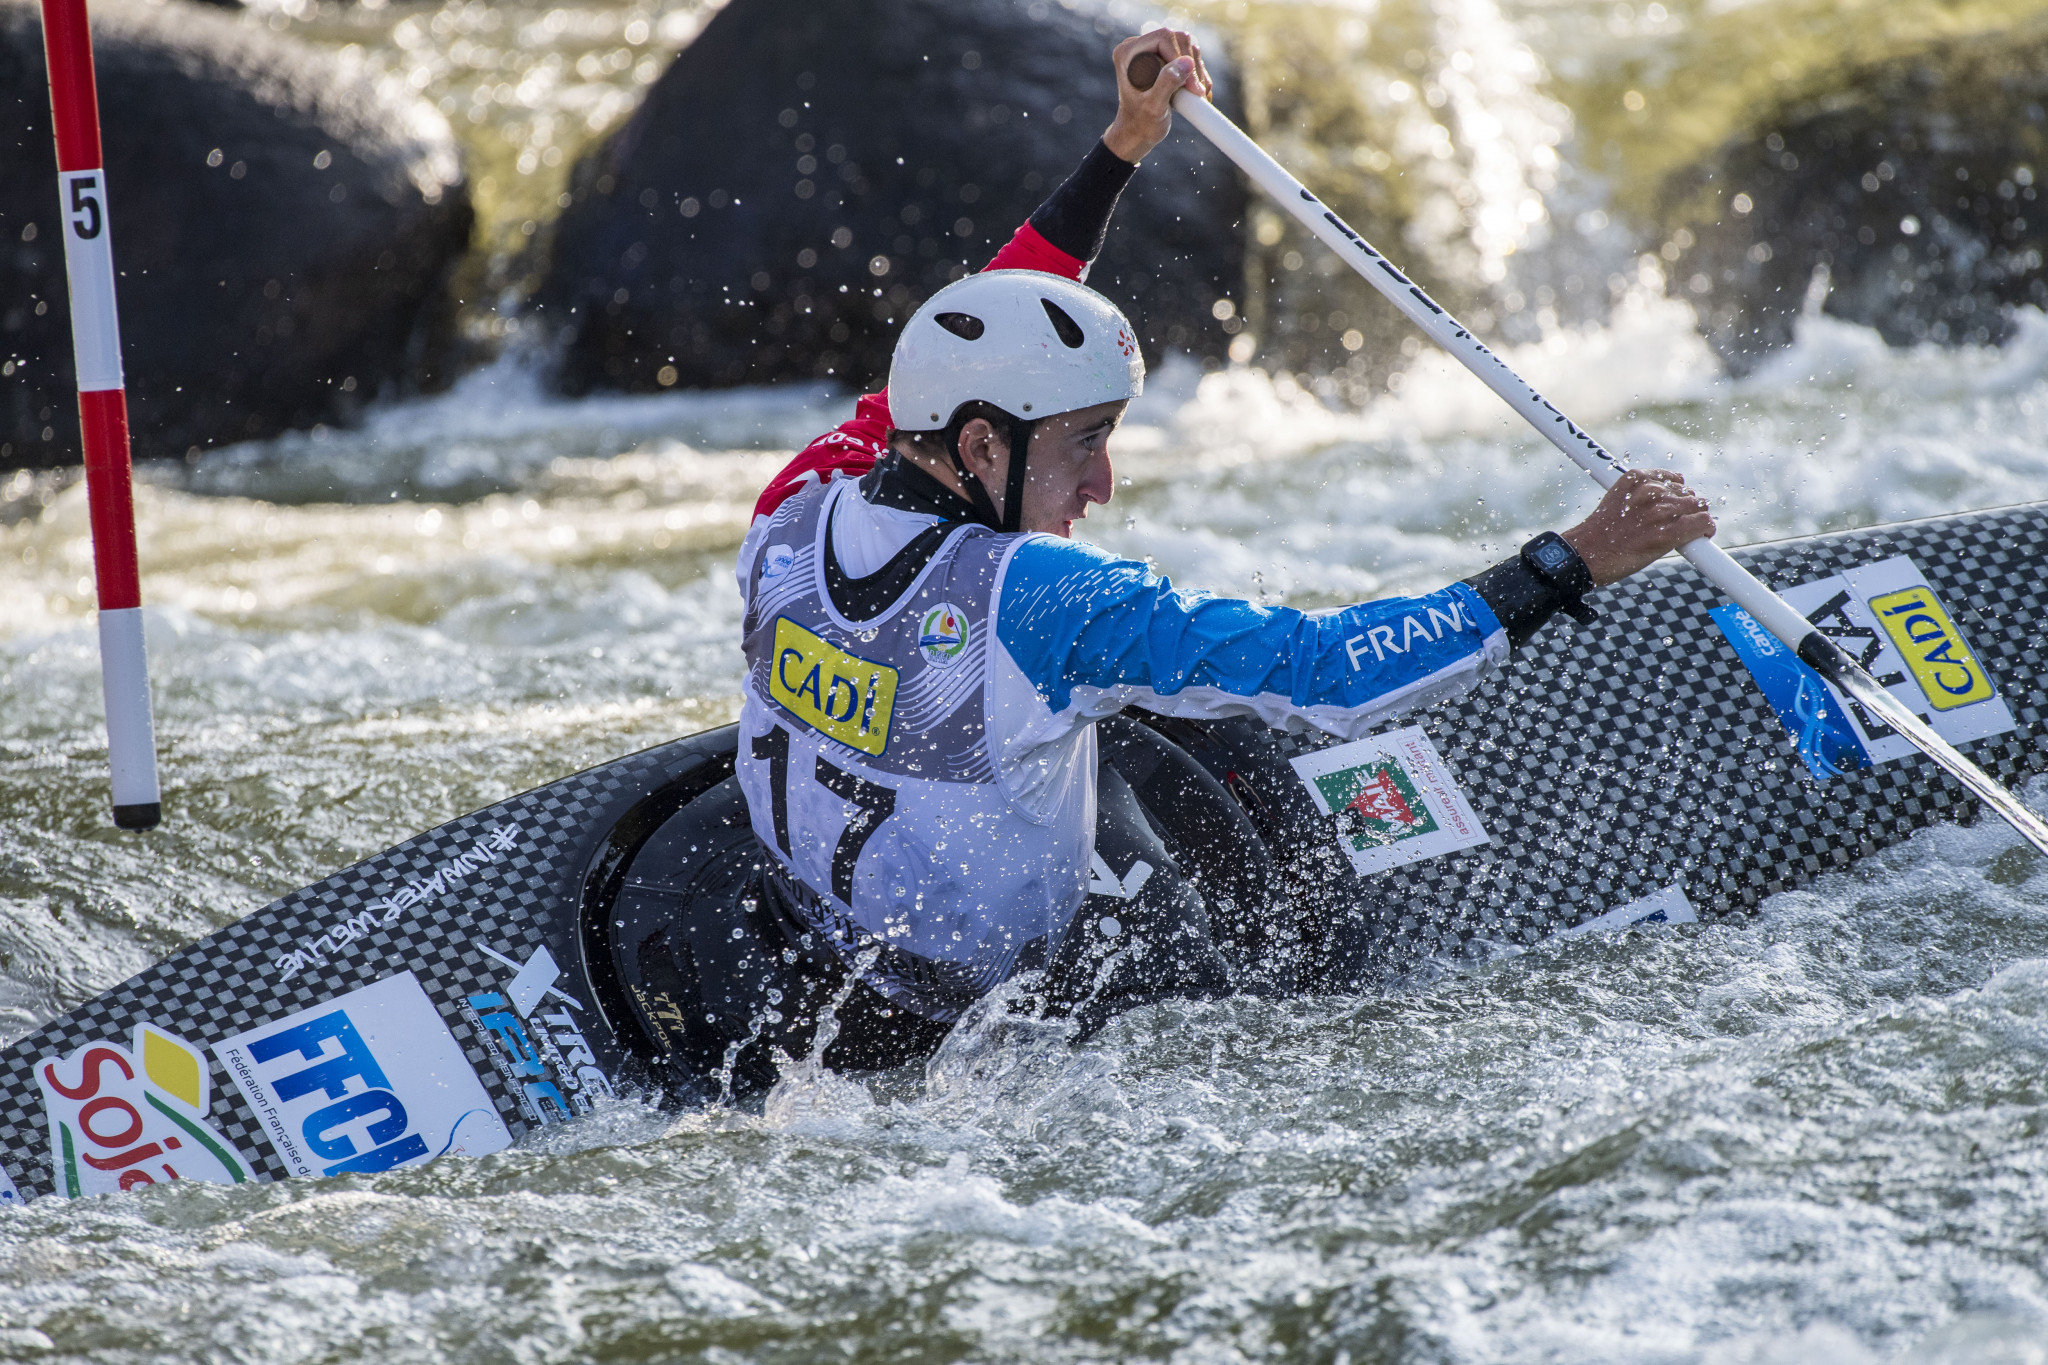 Cedric Joly of France won the opening men's C1 heat at a rain-swept Tokyo 2020 test event for canoe slalom today ©Getty Images